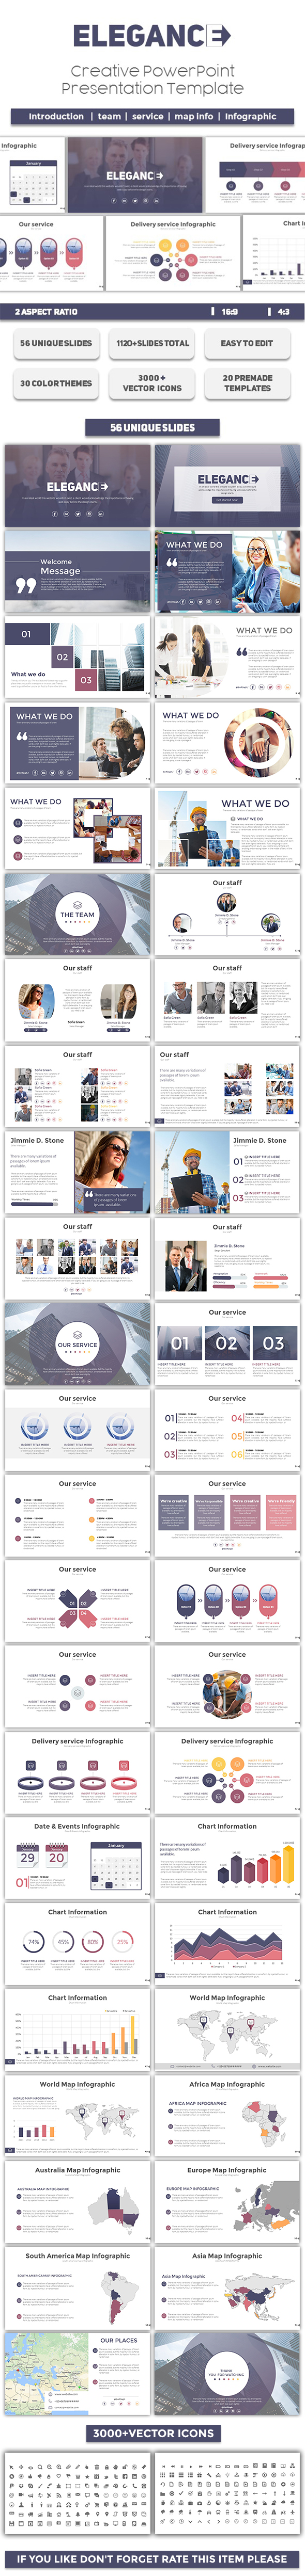 Elegance PowerPoint Template - PowerPoint Templates Presentation Templates